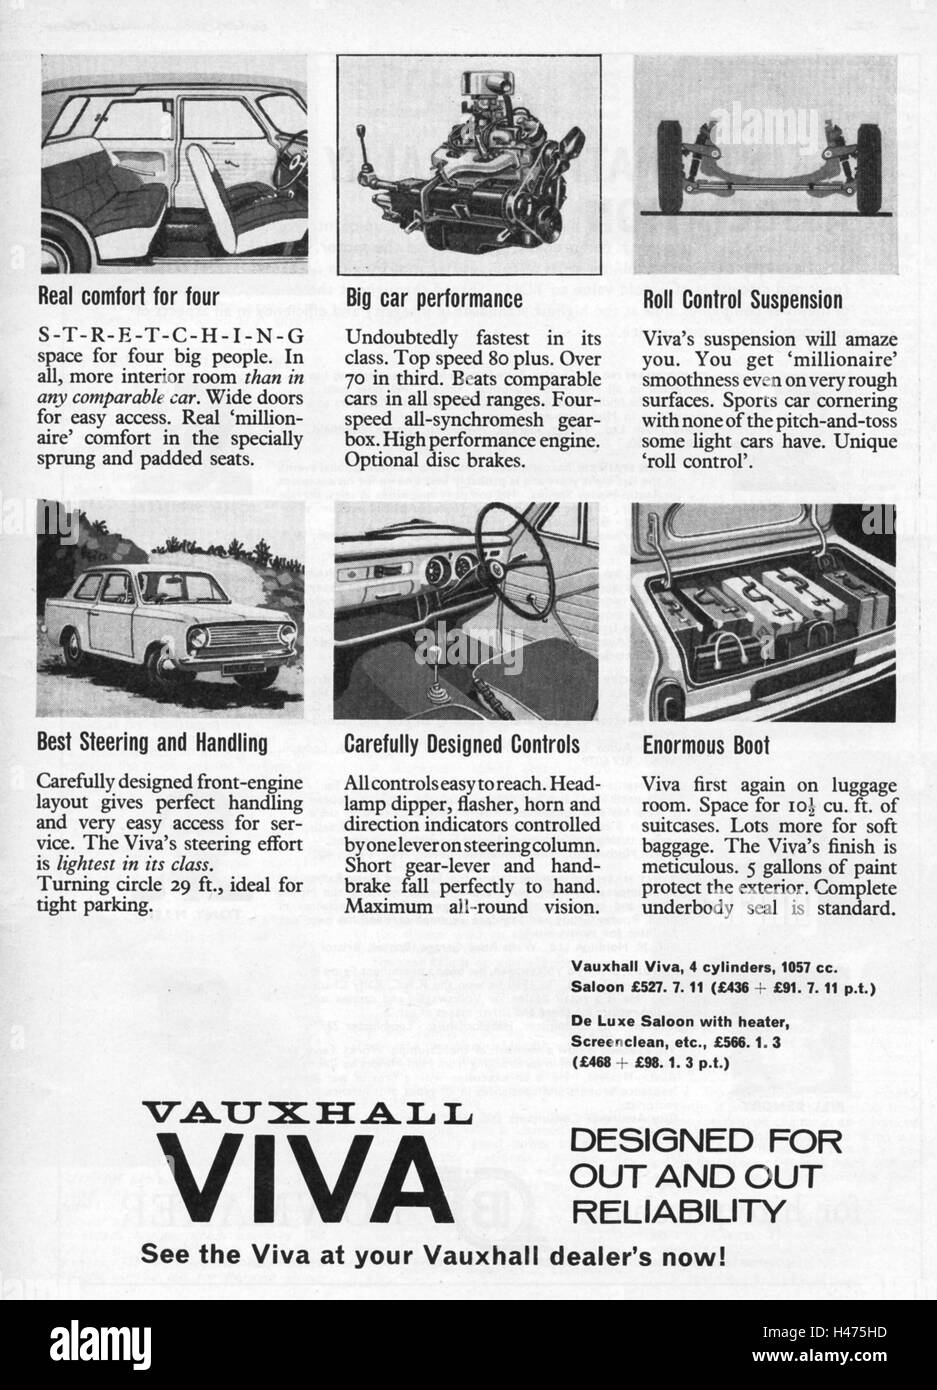 Advert for Vauxhall Viva car from a magazine in 1963. - Stock Image